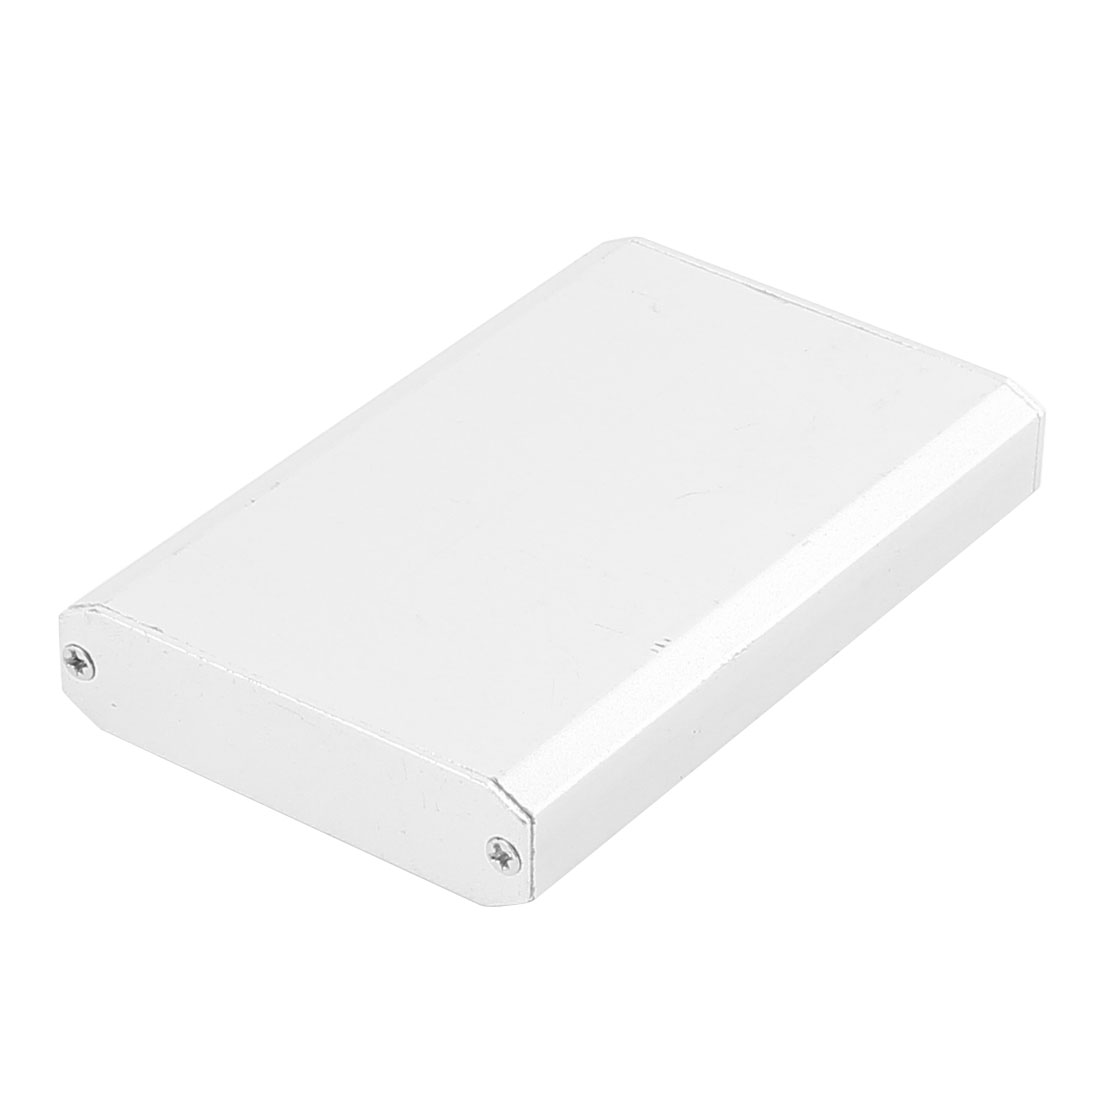 83 x 52 x 13mm Multi-purpose Extruded Aluminum Enclosure Electronic Box